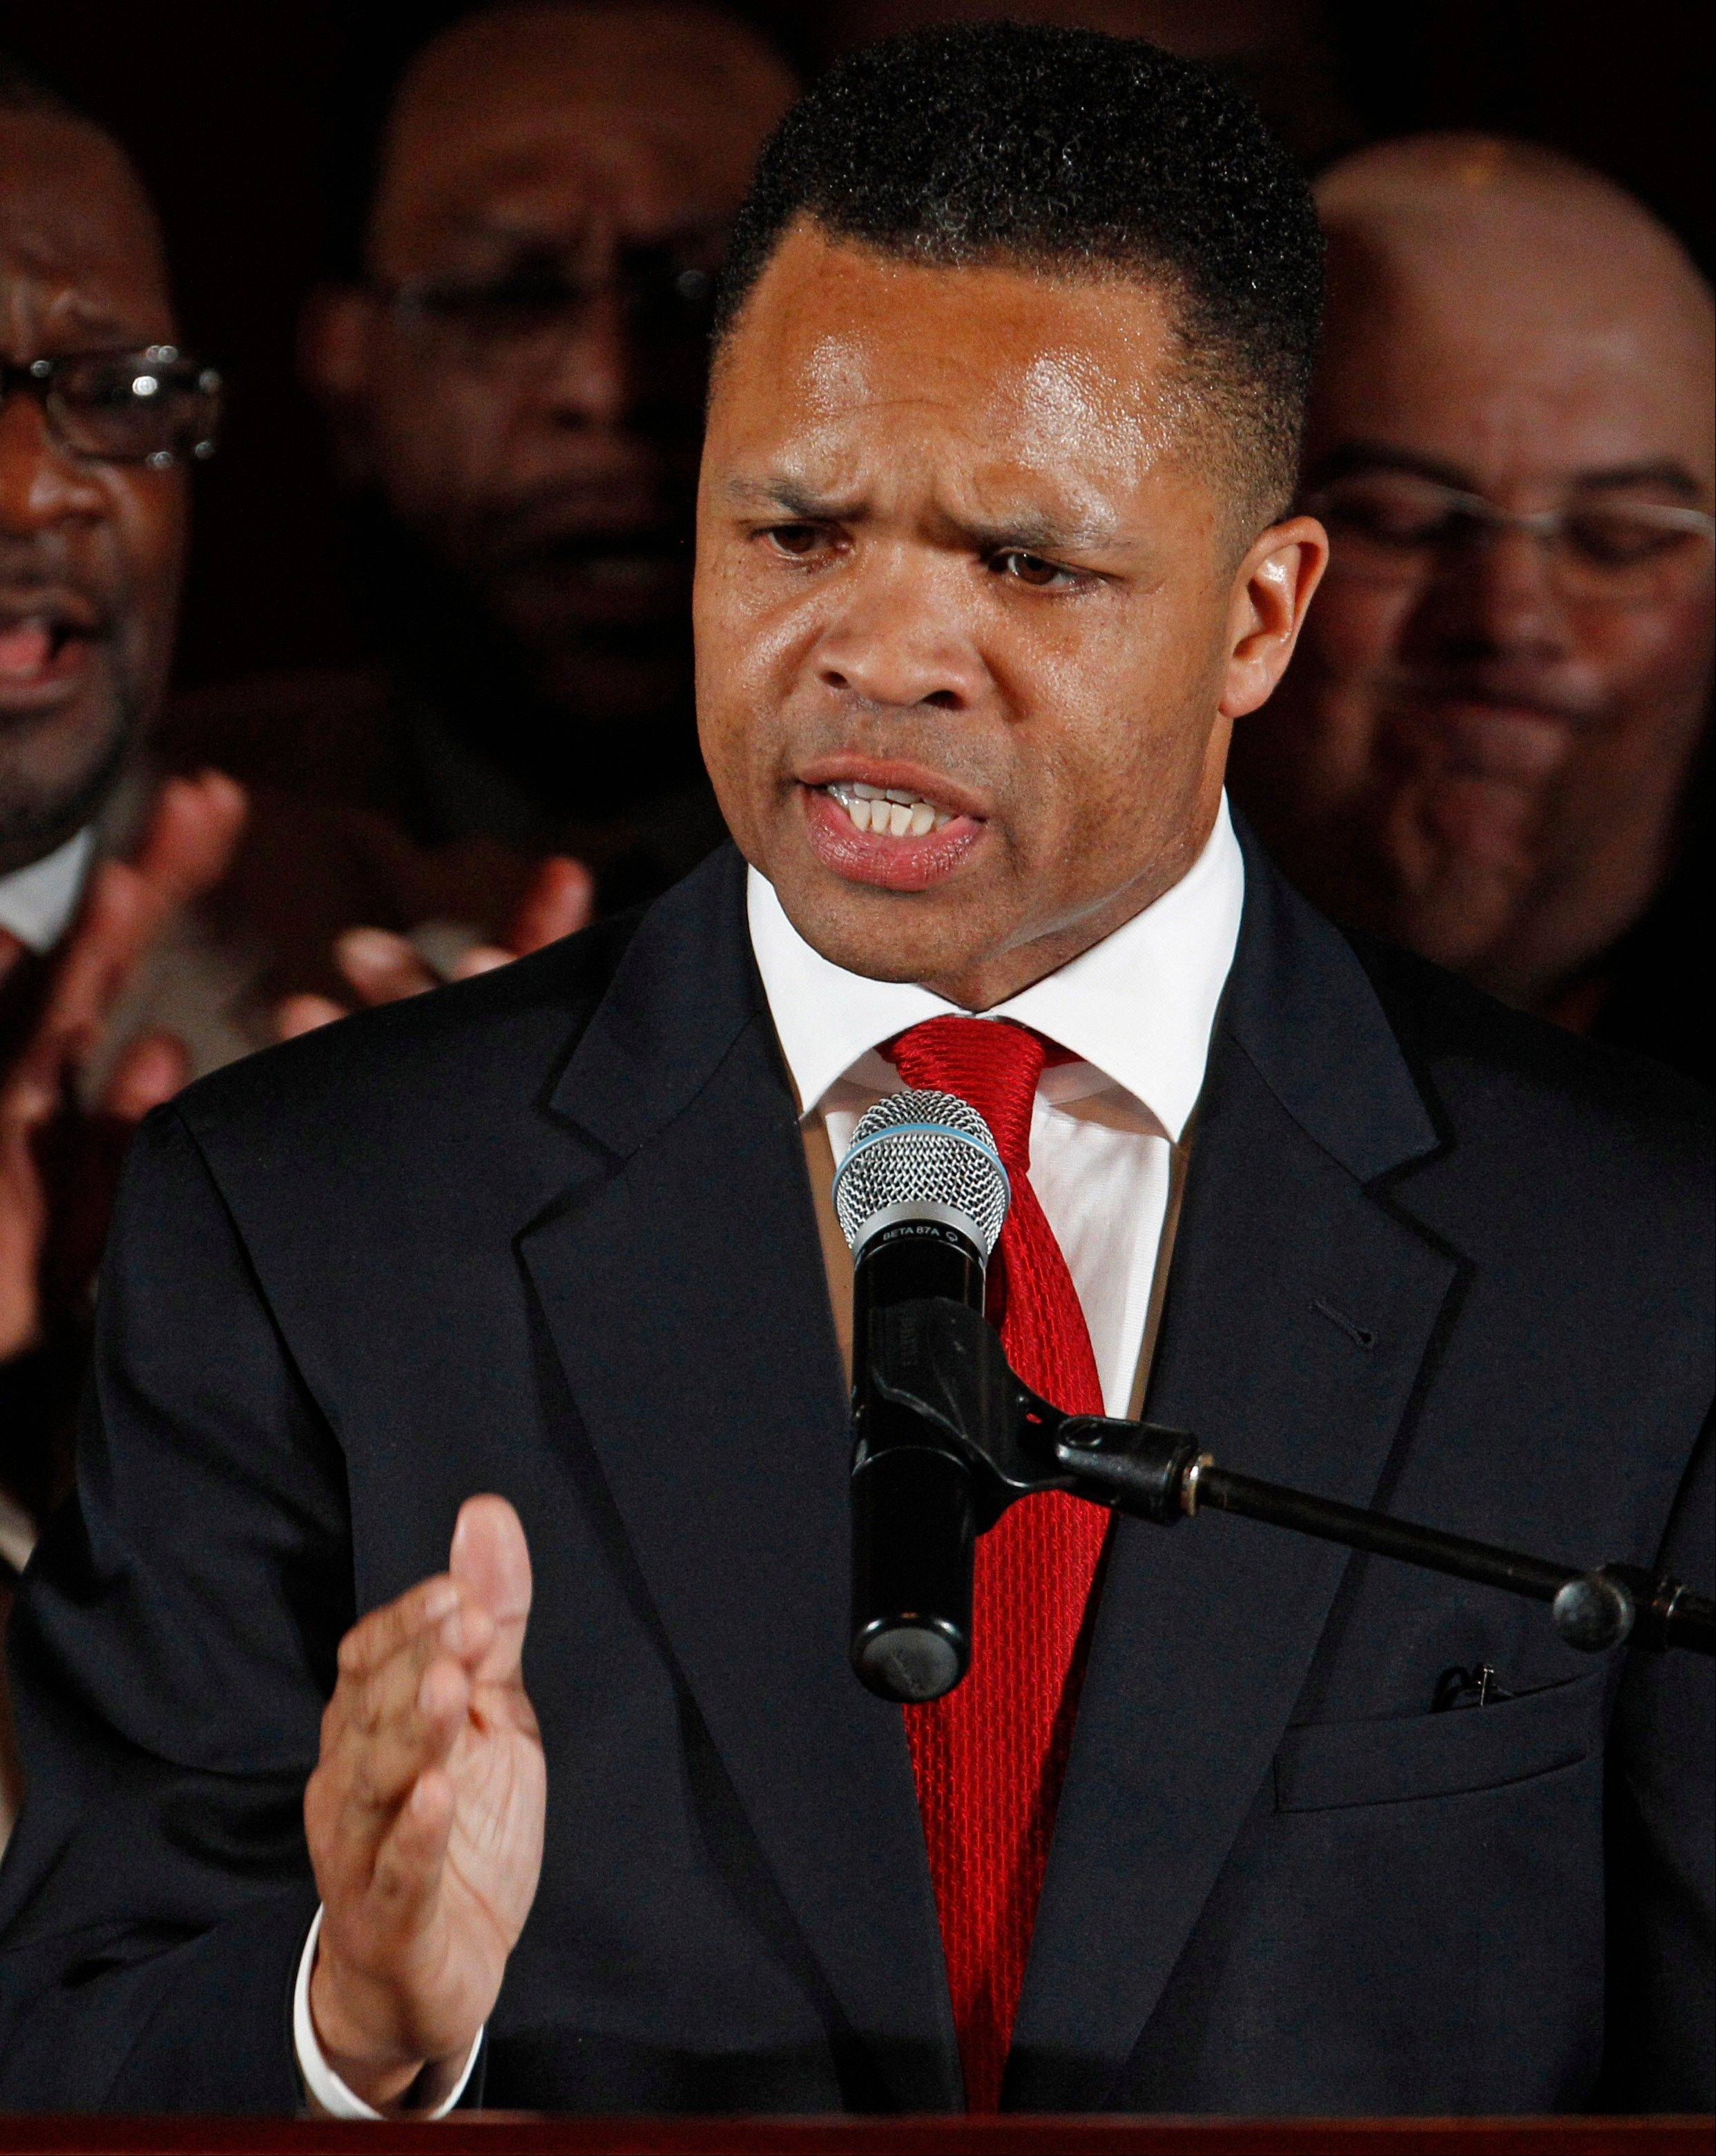 U.S. Rep. Jesse Jackson Jr.'s medical condition on Thursday was said to be more serious than initially believed and he's undergoing evaluation and treatment at an in-patient medical facility. The congressman's office announced last week that he had been on medical leave for two weeks and was being treated for exhaustion.